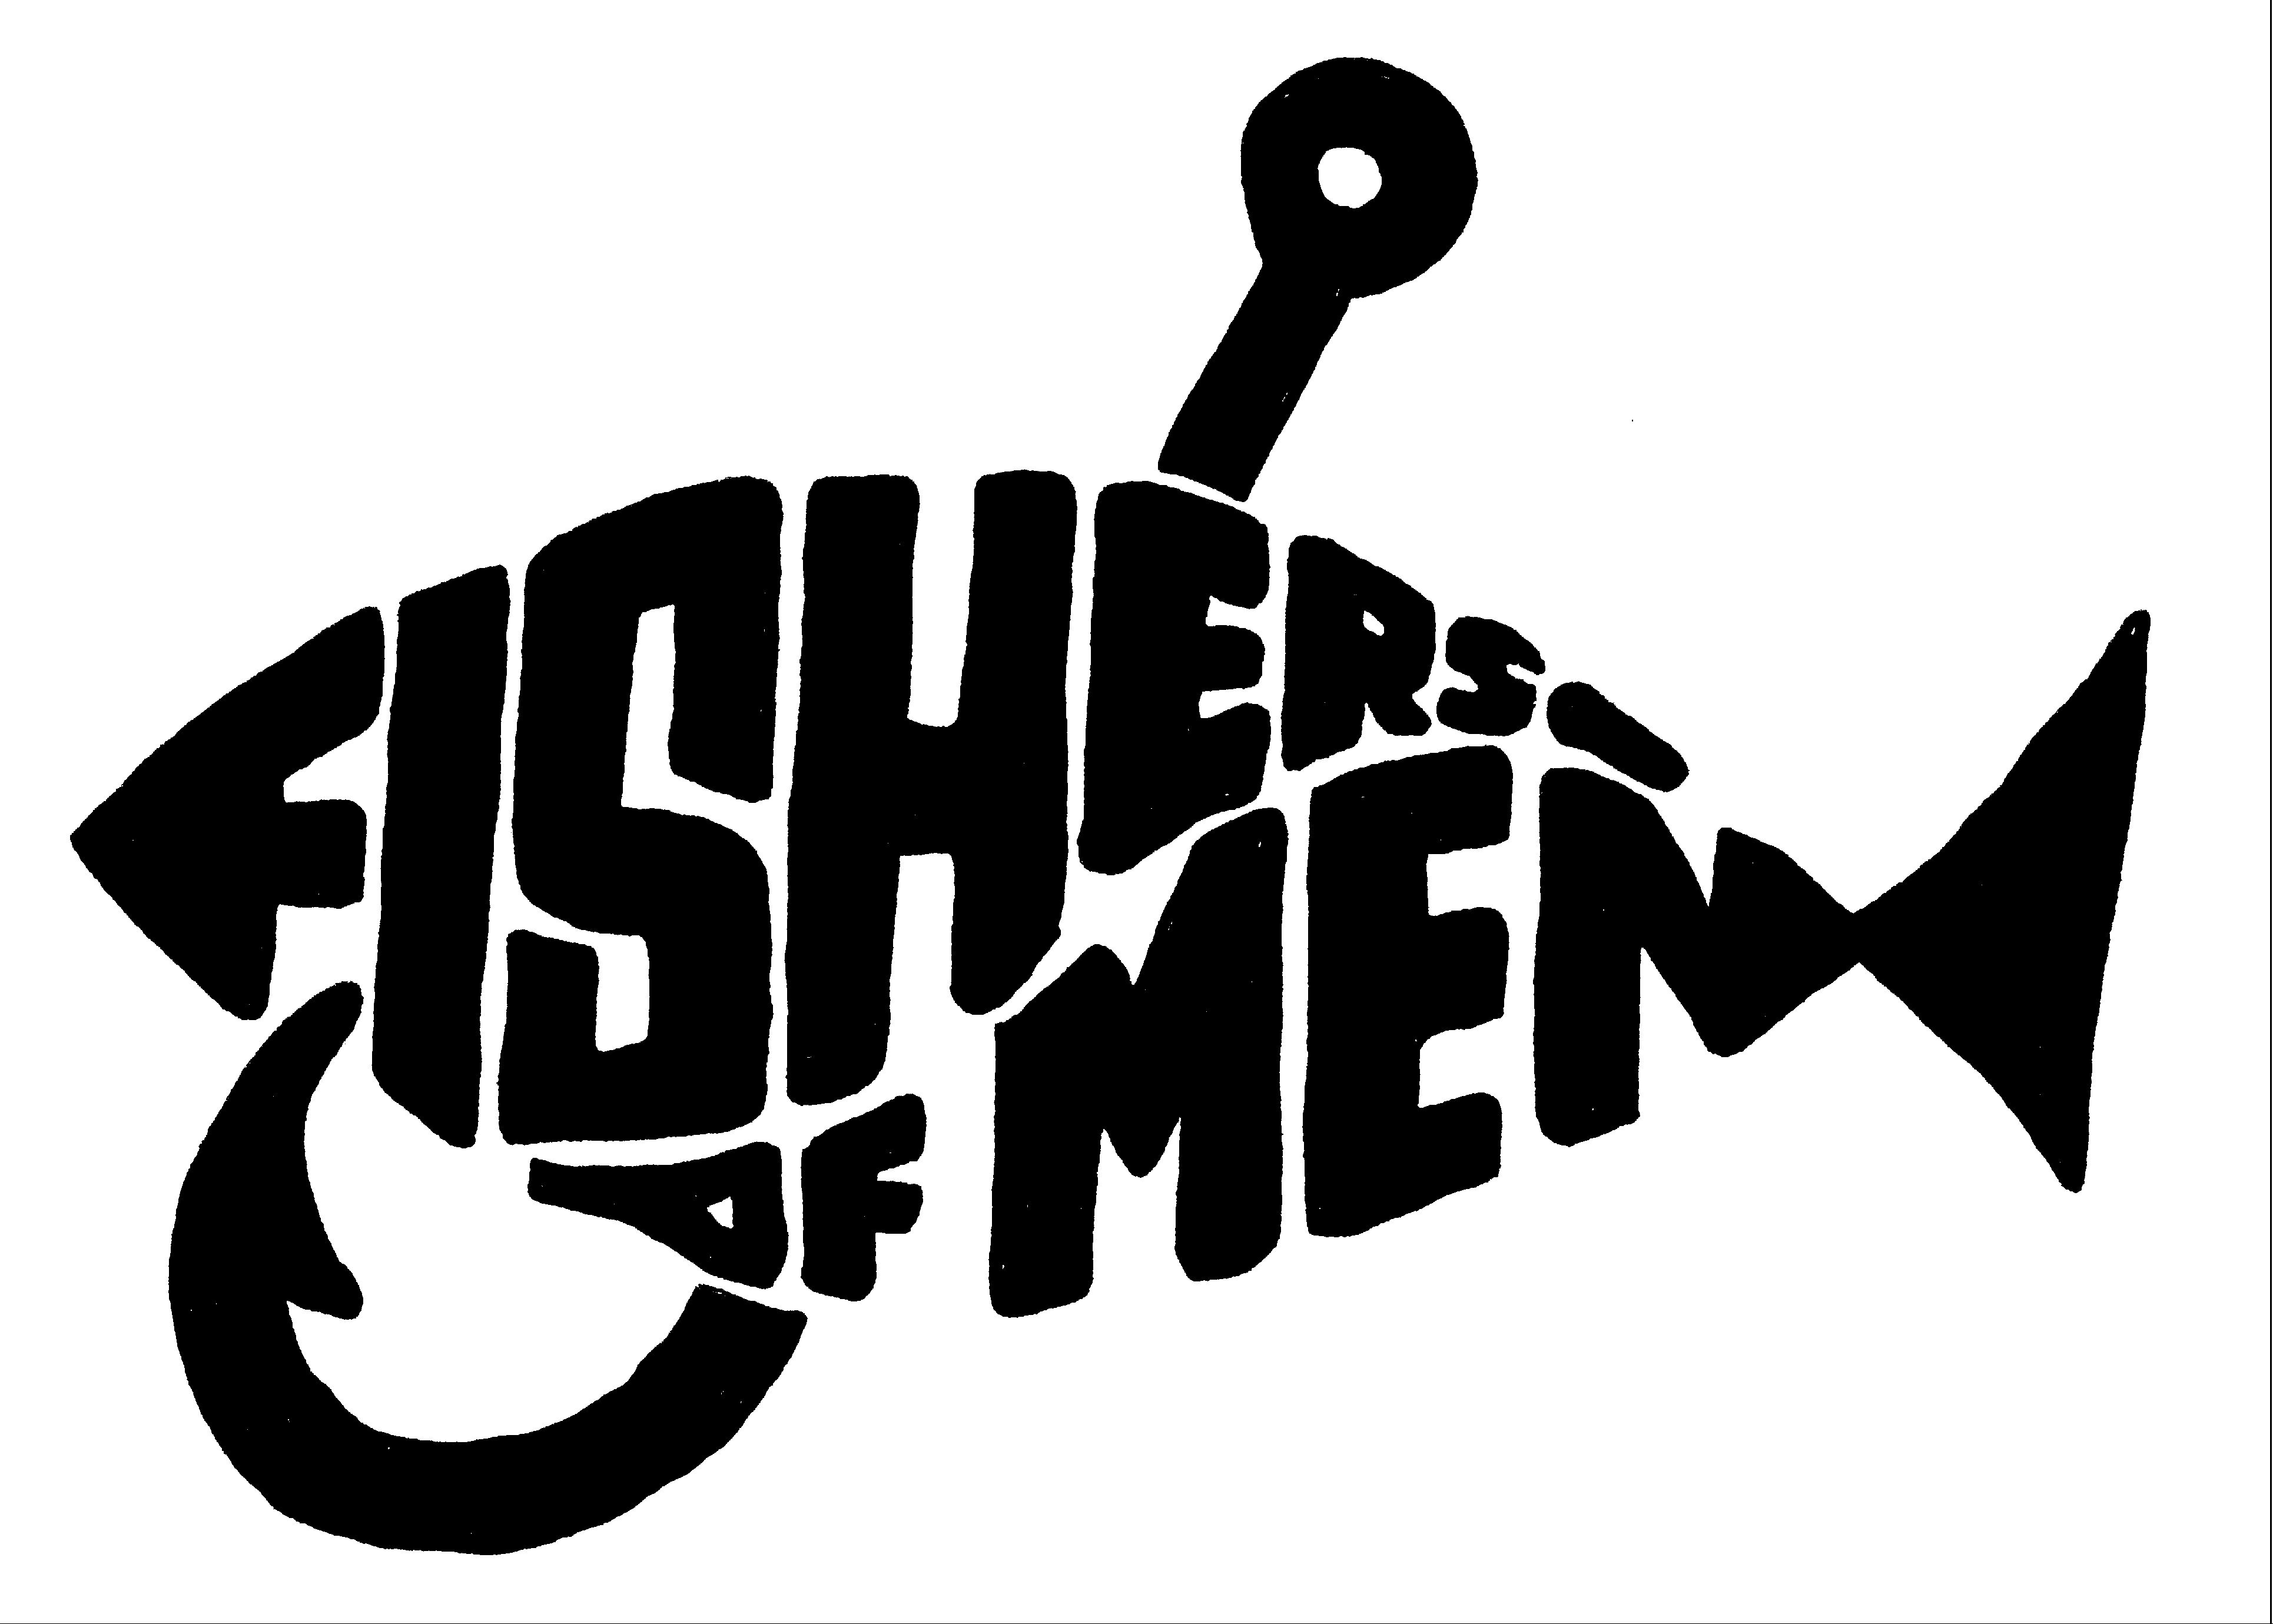 He is calling us to become fishers of men.